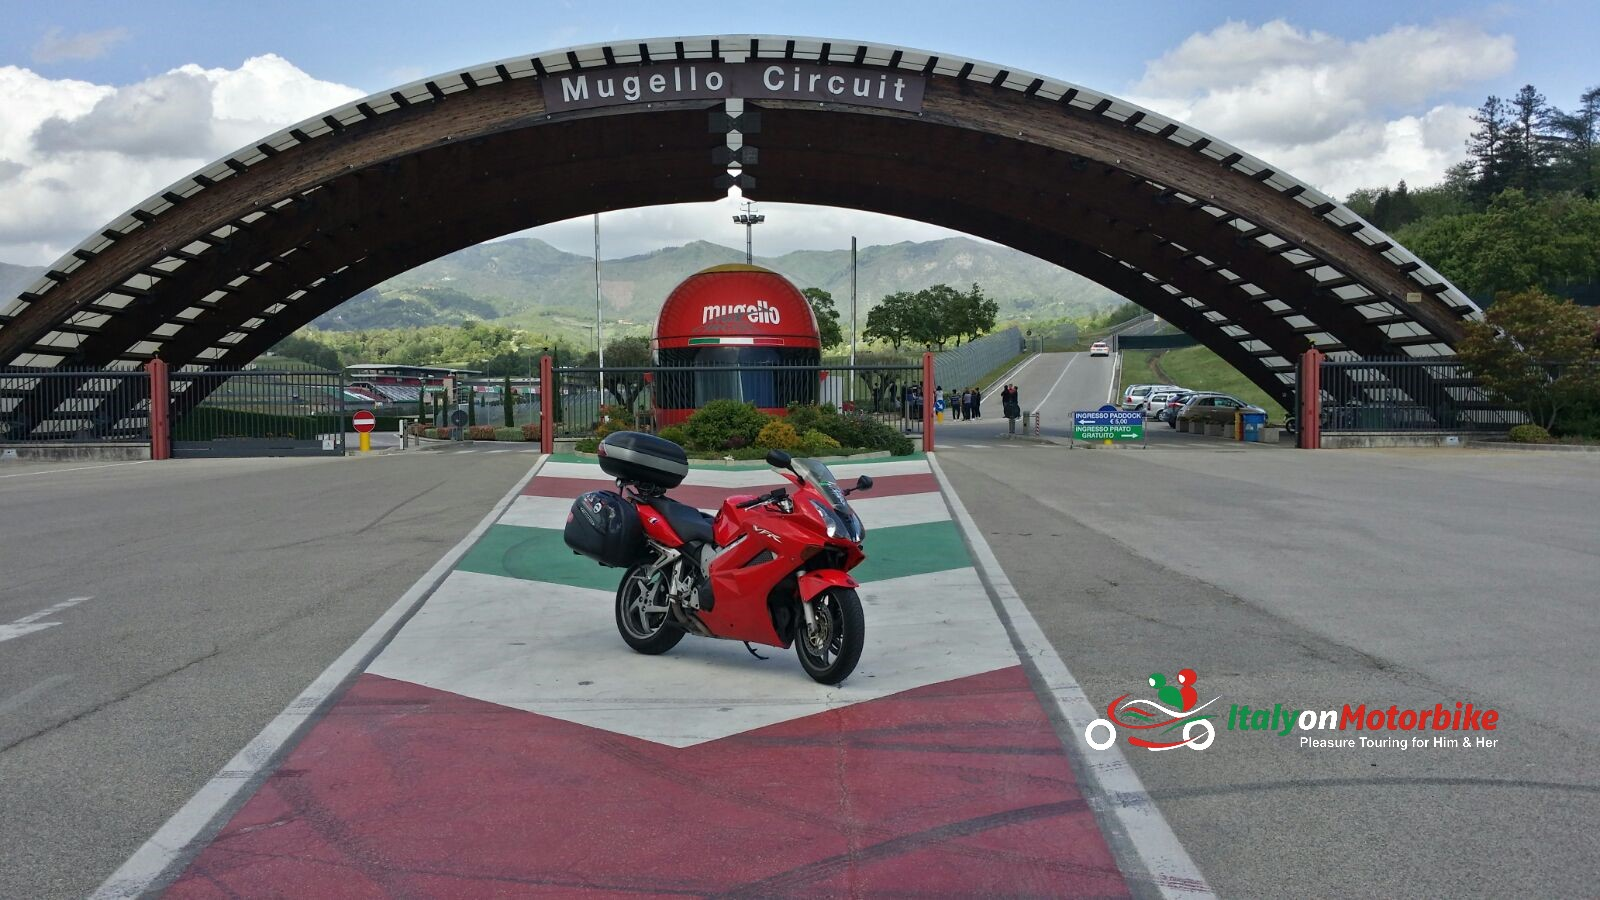 A Honda VFR800 in front of the gates of the racing track of Mugello on one of our guided motorcycle tour in Italy